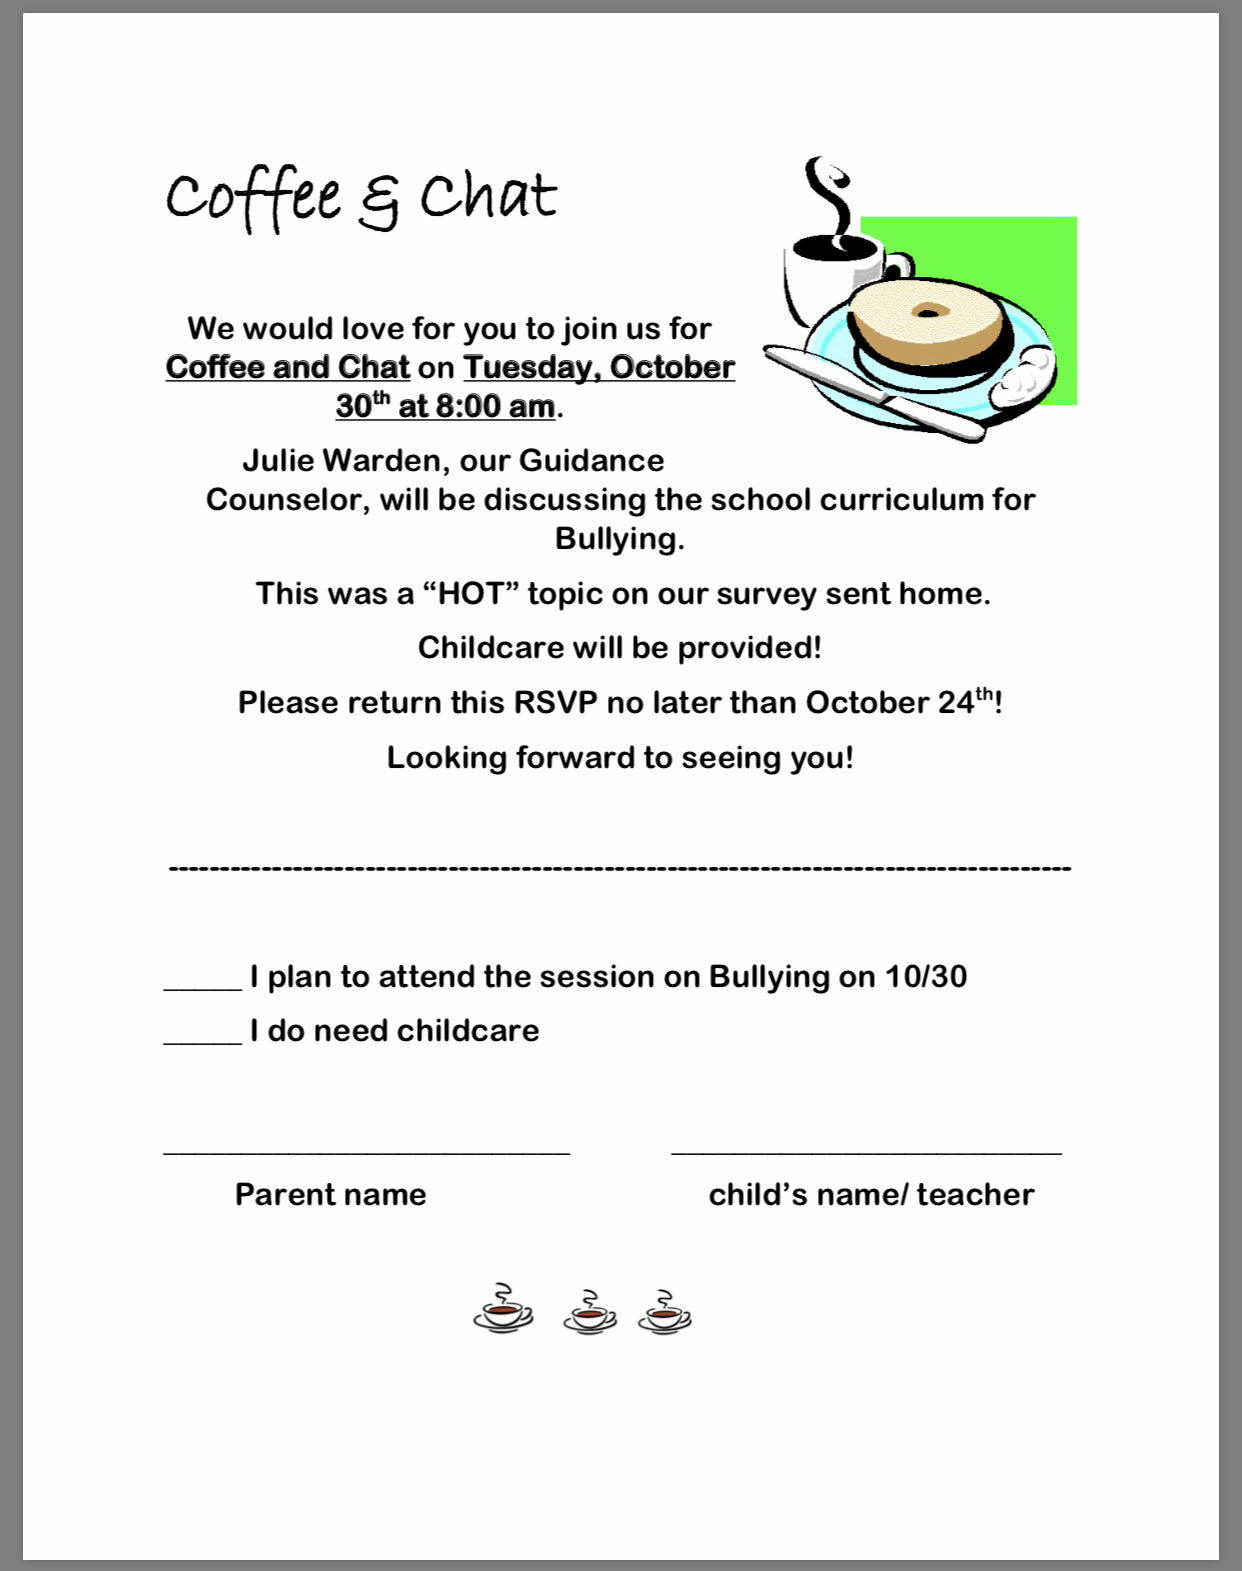 Coffee and Chat paper copy availablebin office